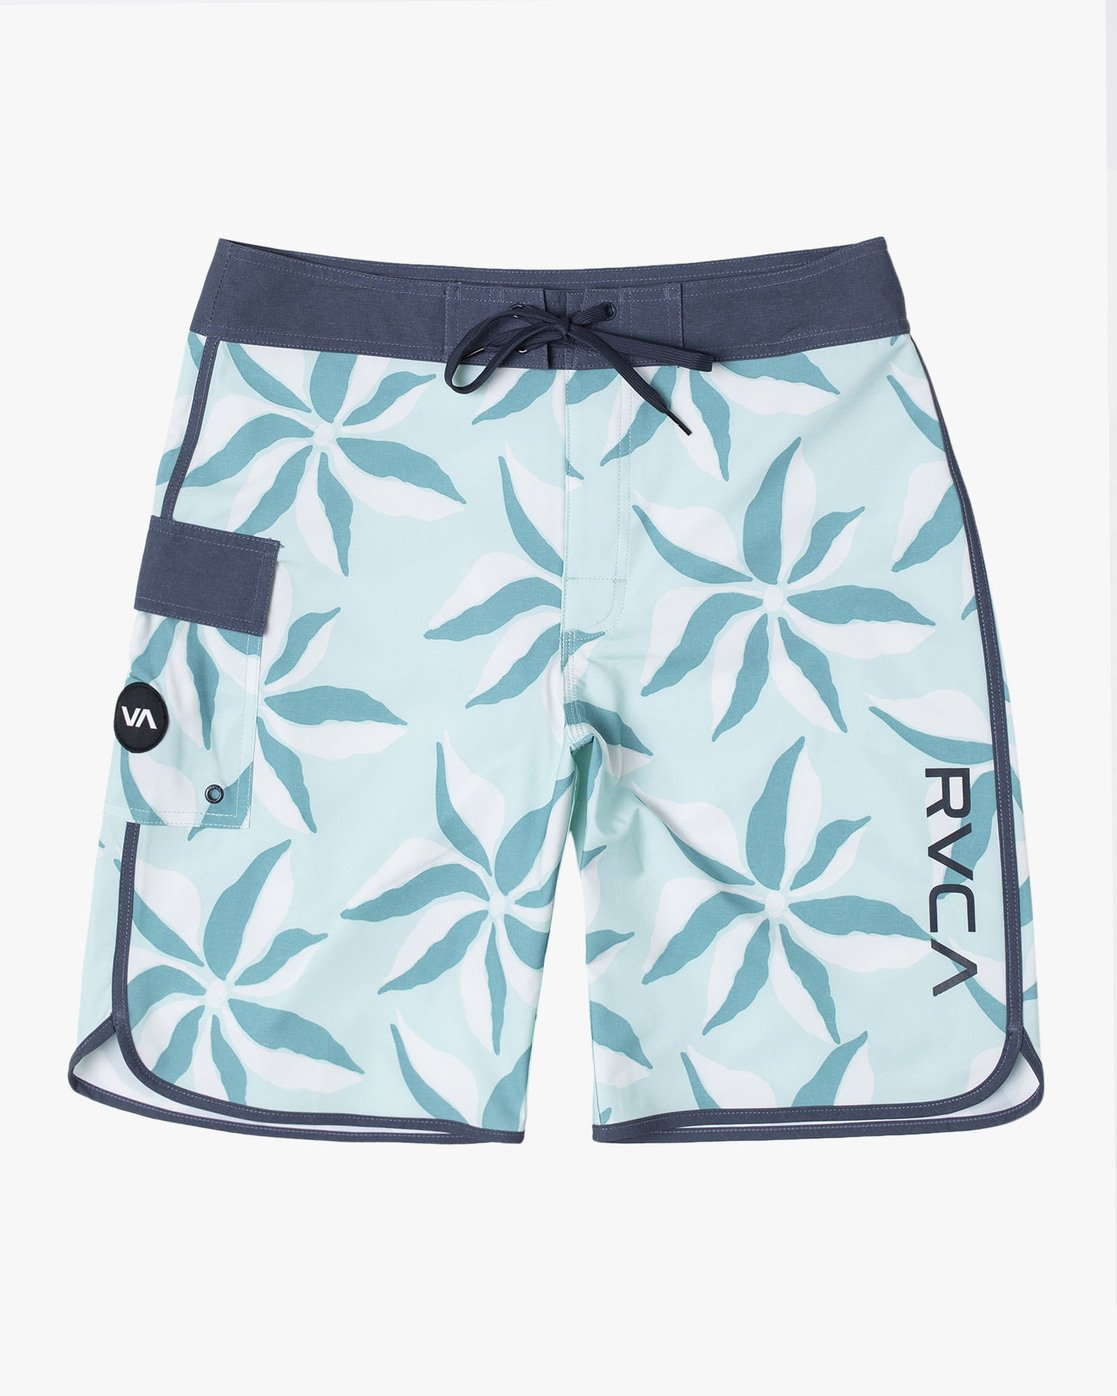 RVCA Men/'s Eastern Stretch Performance Industry Board Shorts Size 30 32 34